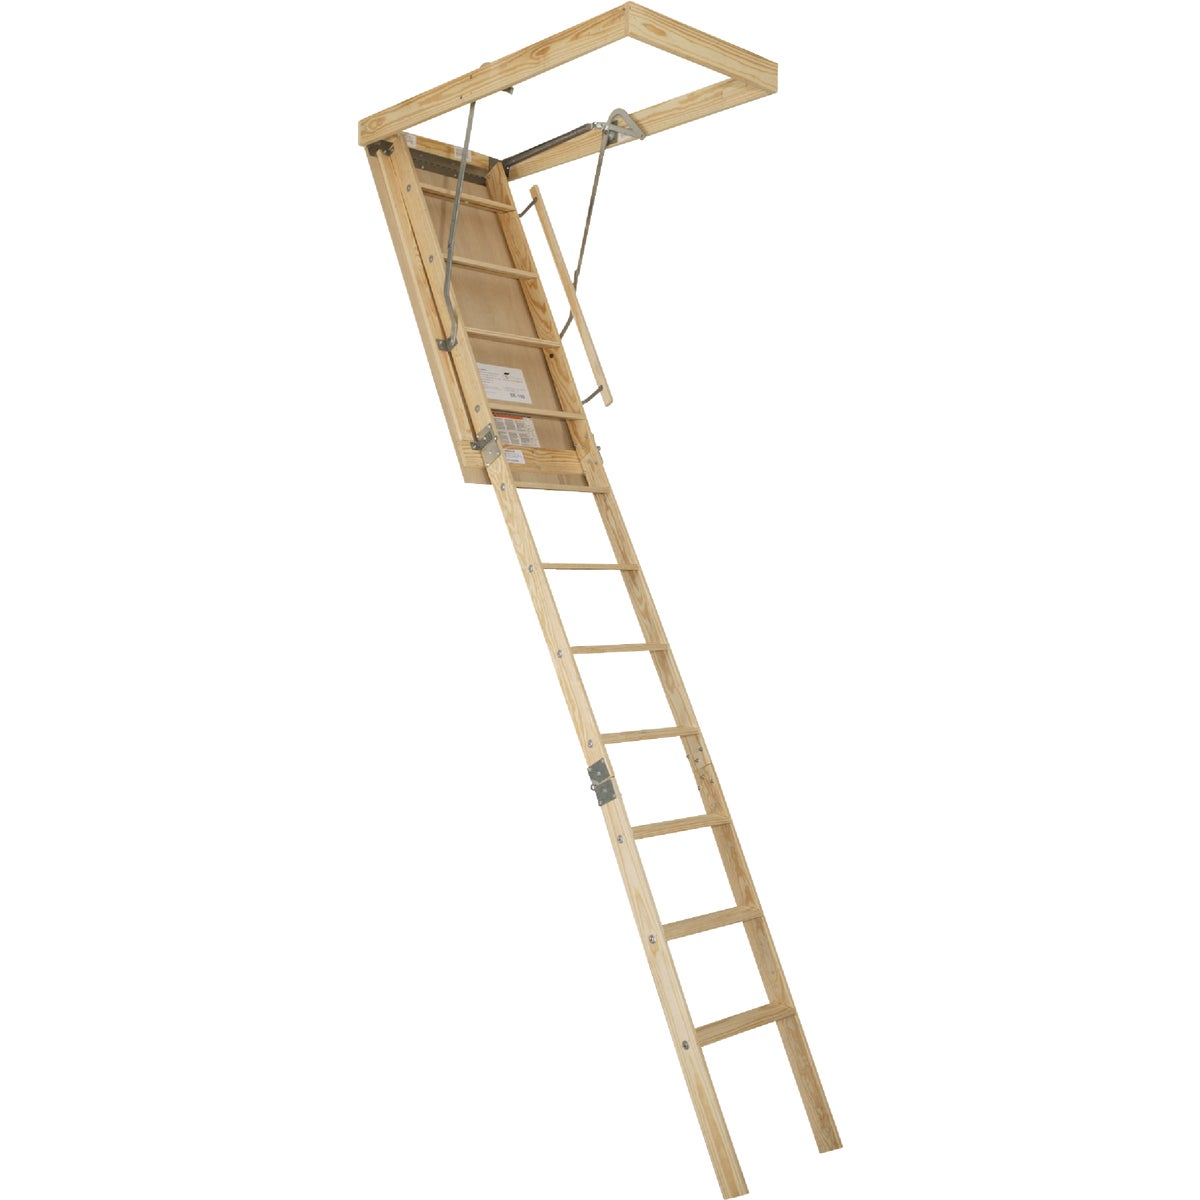 22X120 WNDSR ATTIC STAIR - BET100 by Louisville Ladder